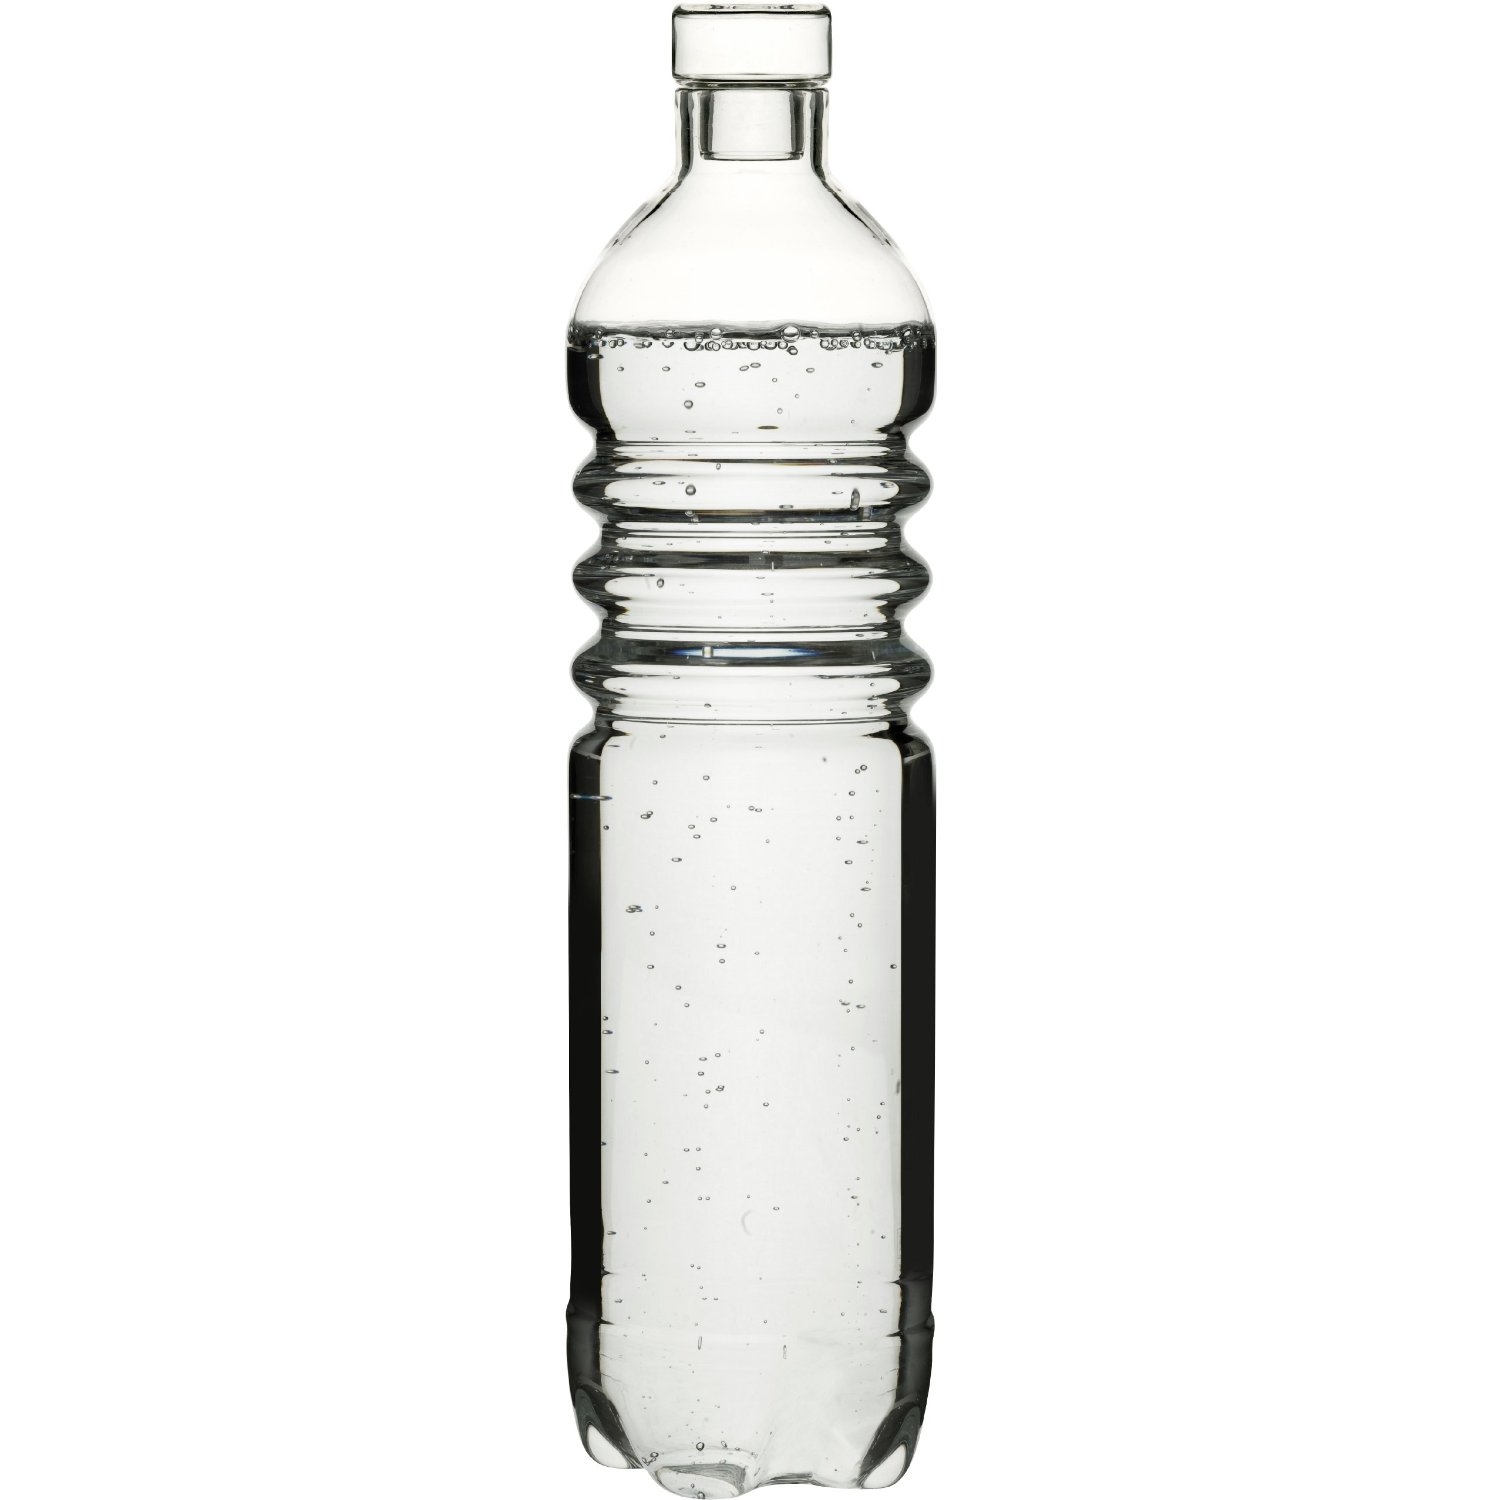 hight resolution of plastic water bottle black and white clipart